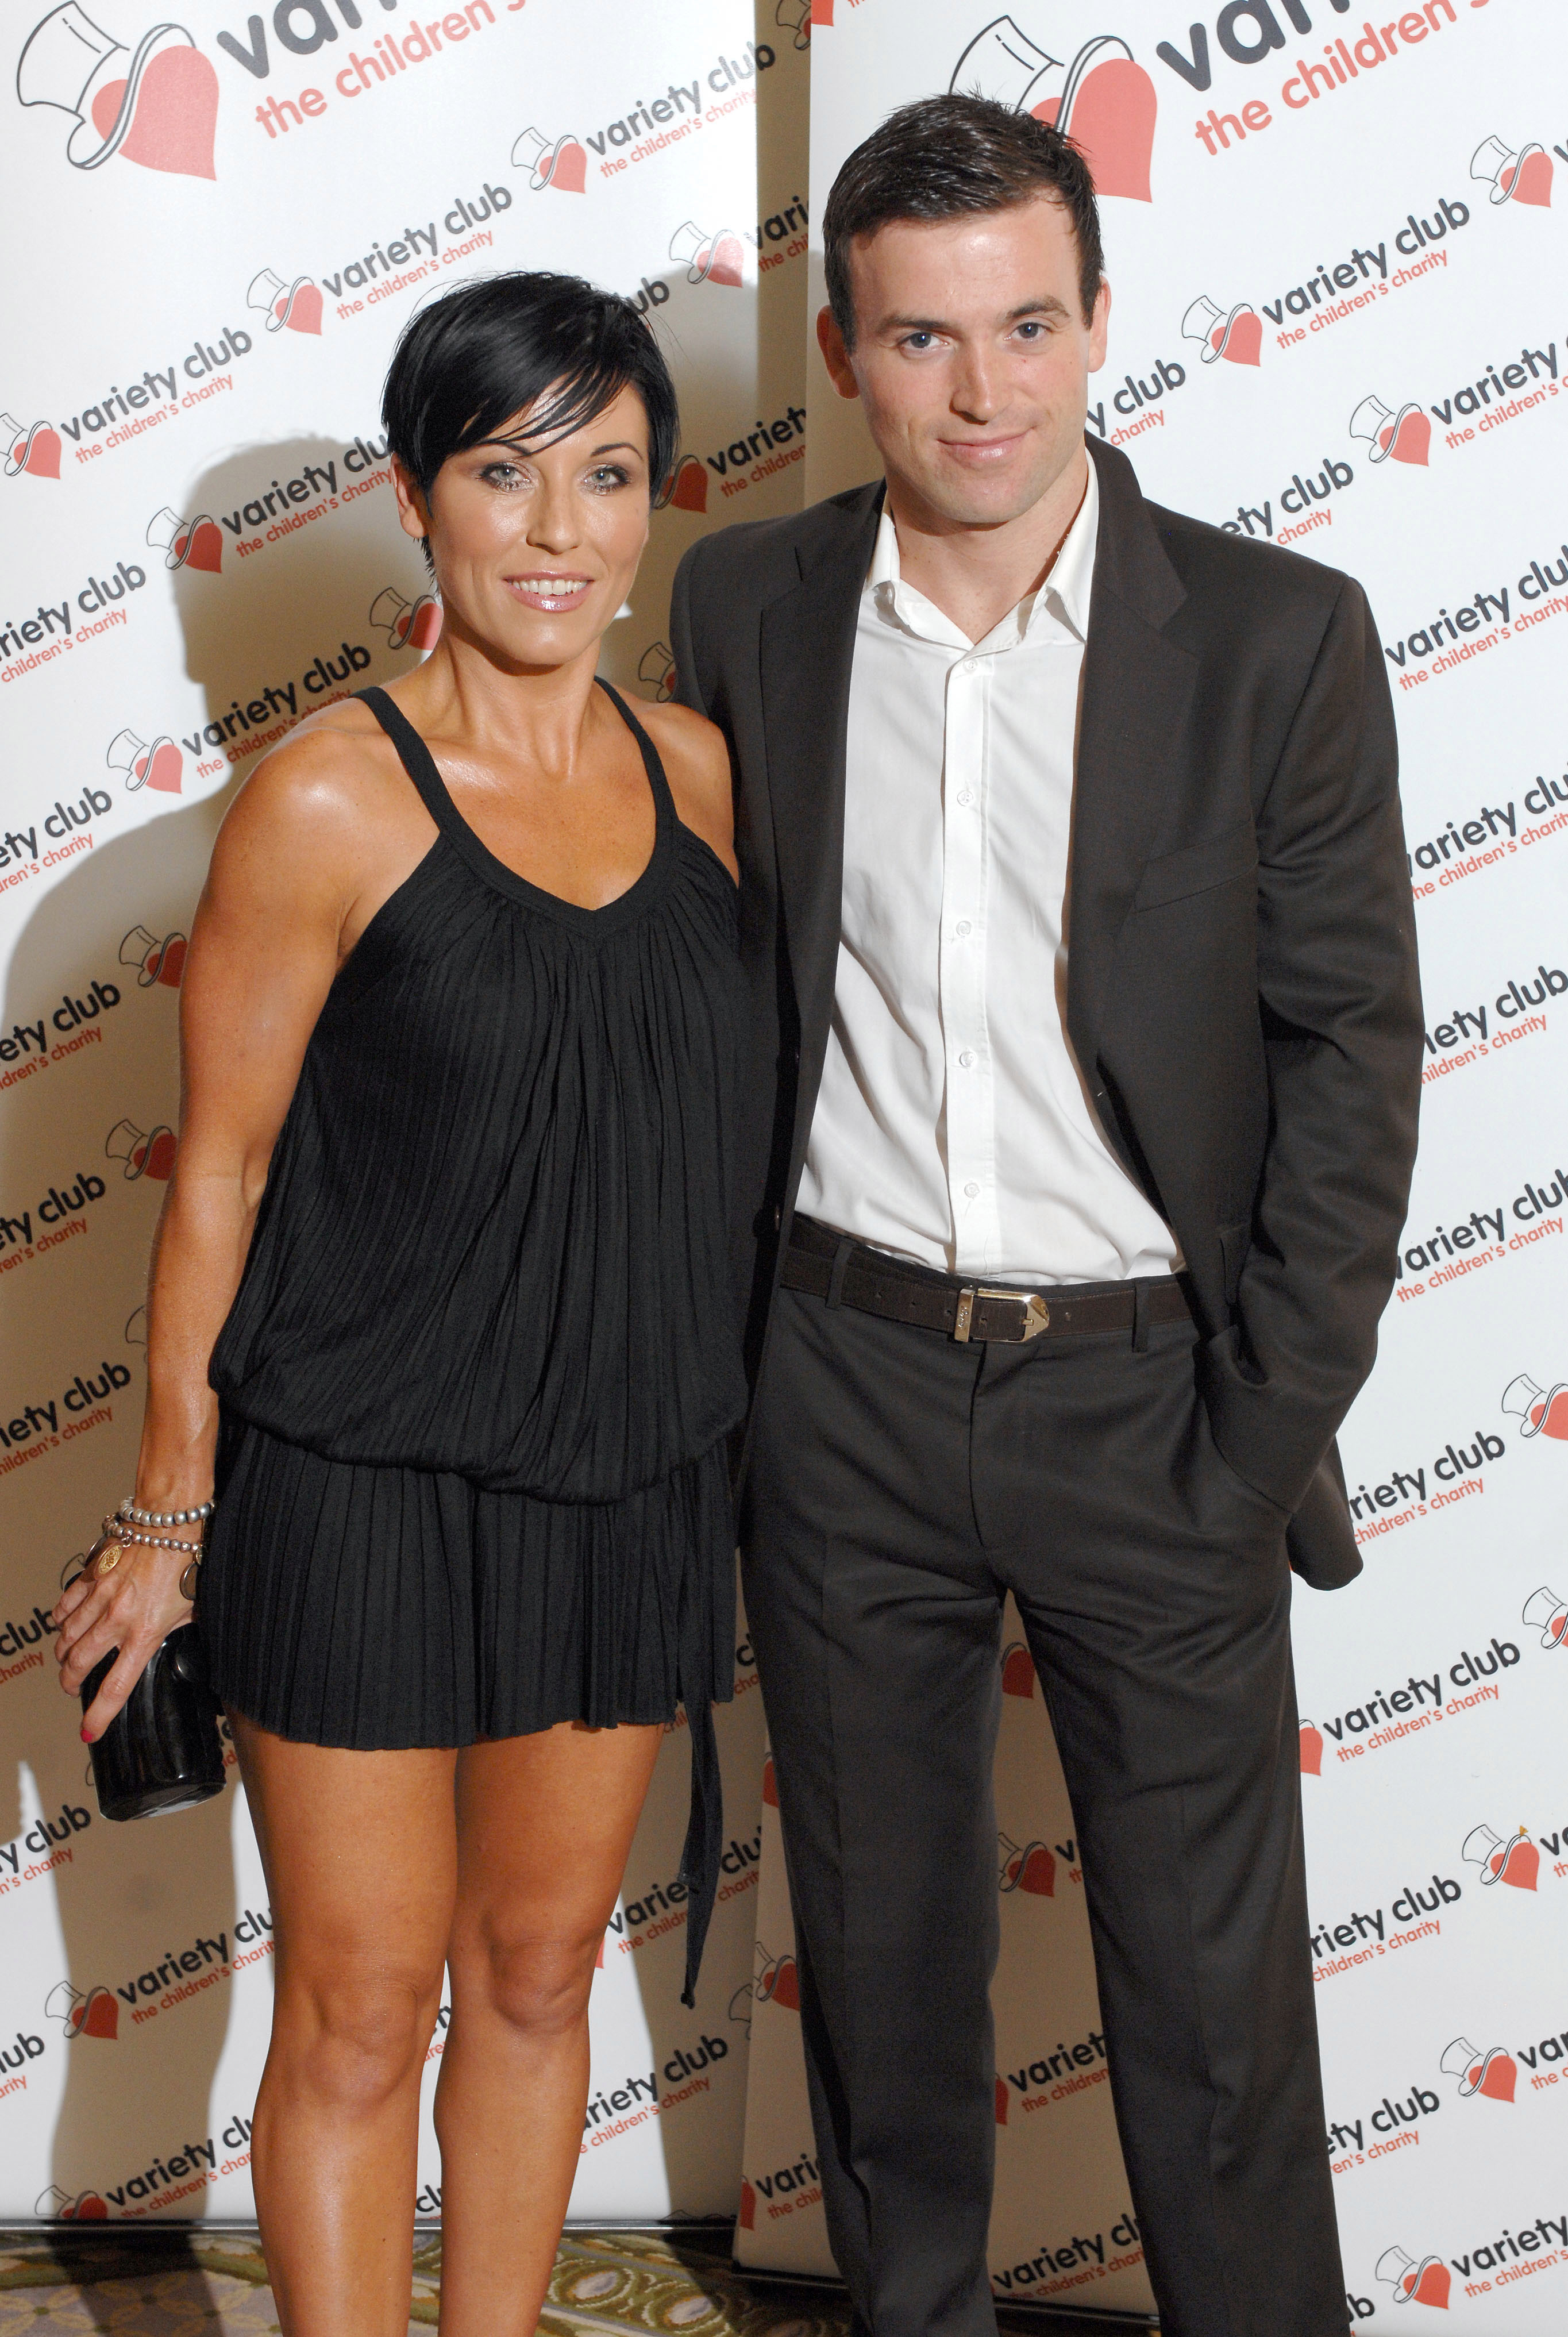 She also had a romance with boxer Tommy O'Neill - one of three failed engagements